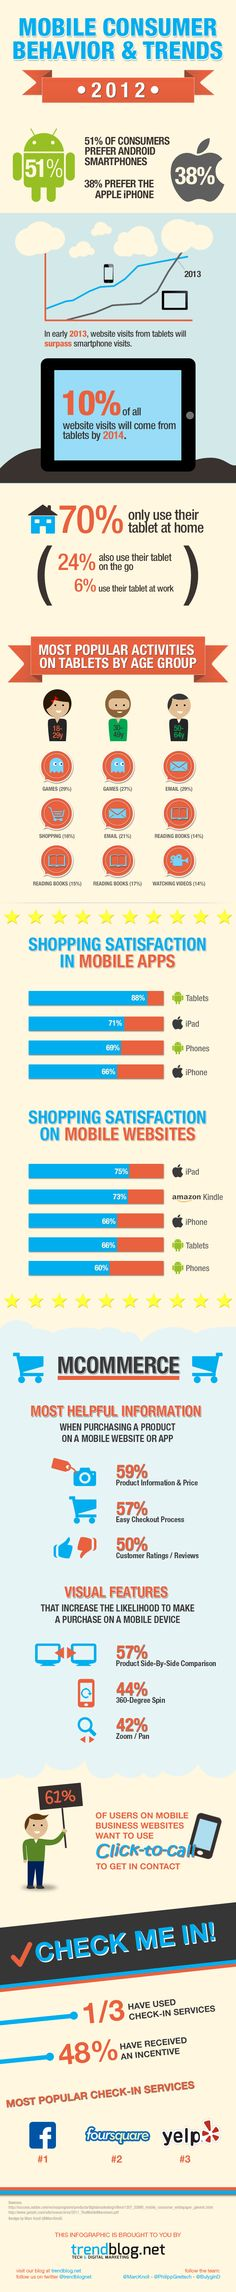 #MobileConsumer Behavior and Trends 2012 #infographic